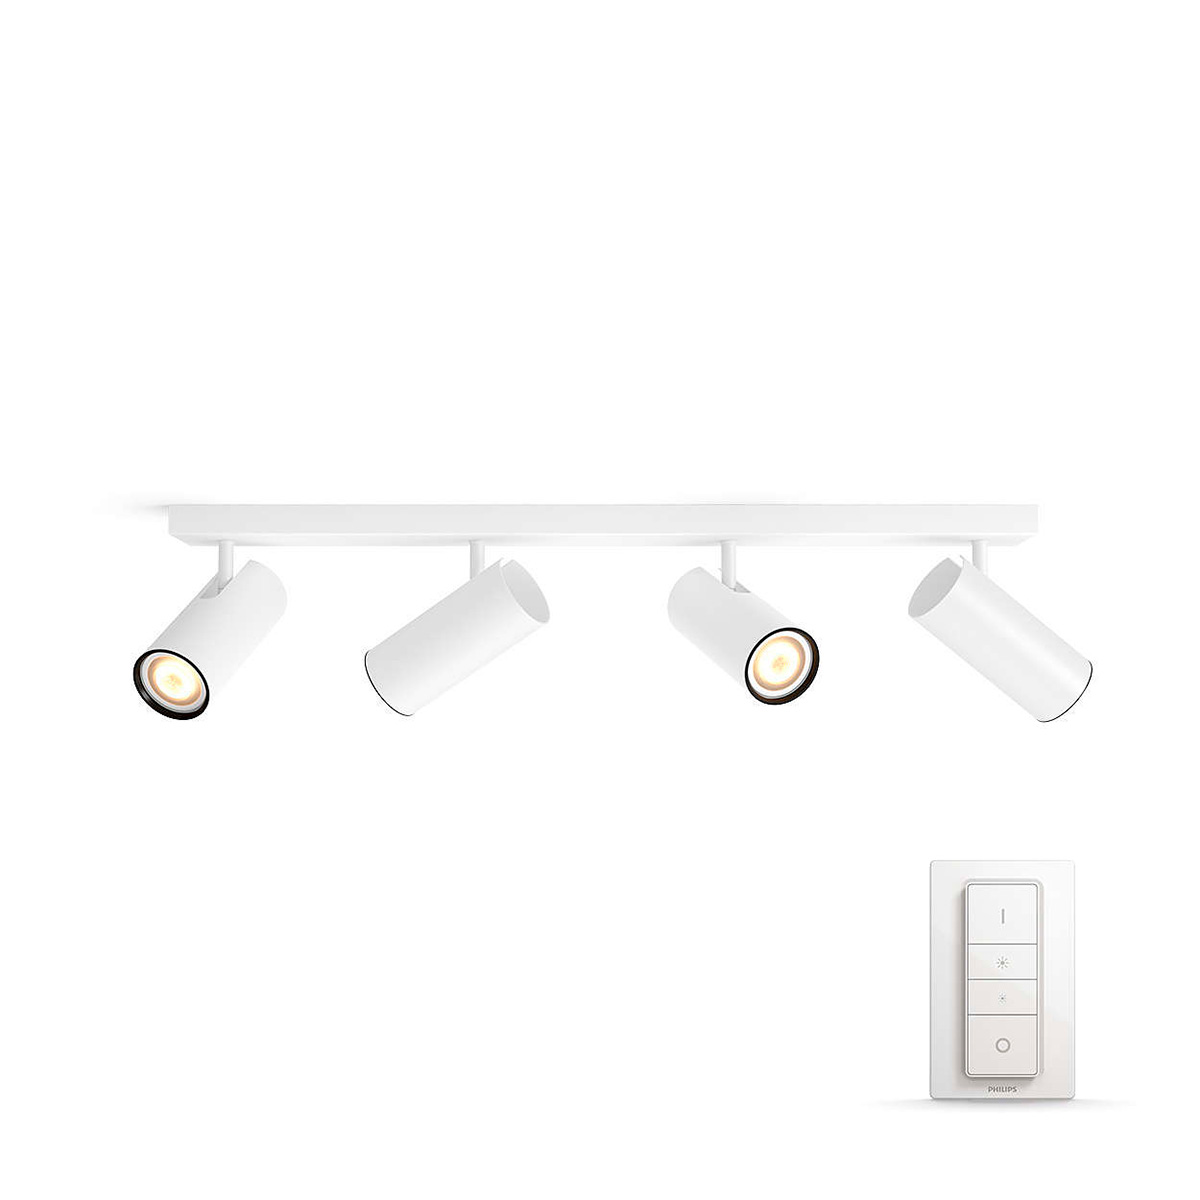 Image of   Philips Connected loftlampe med spot - White ambiance - Buratto - Hvid